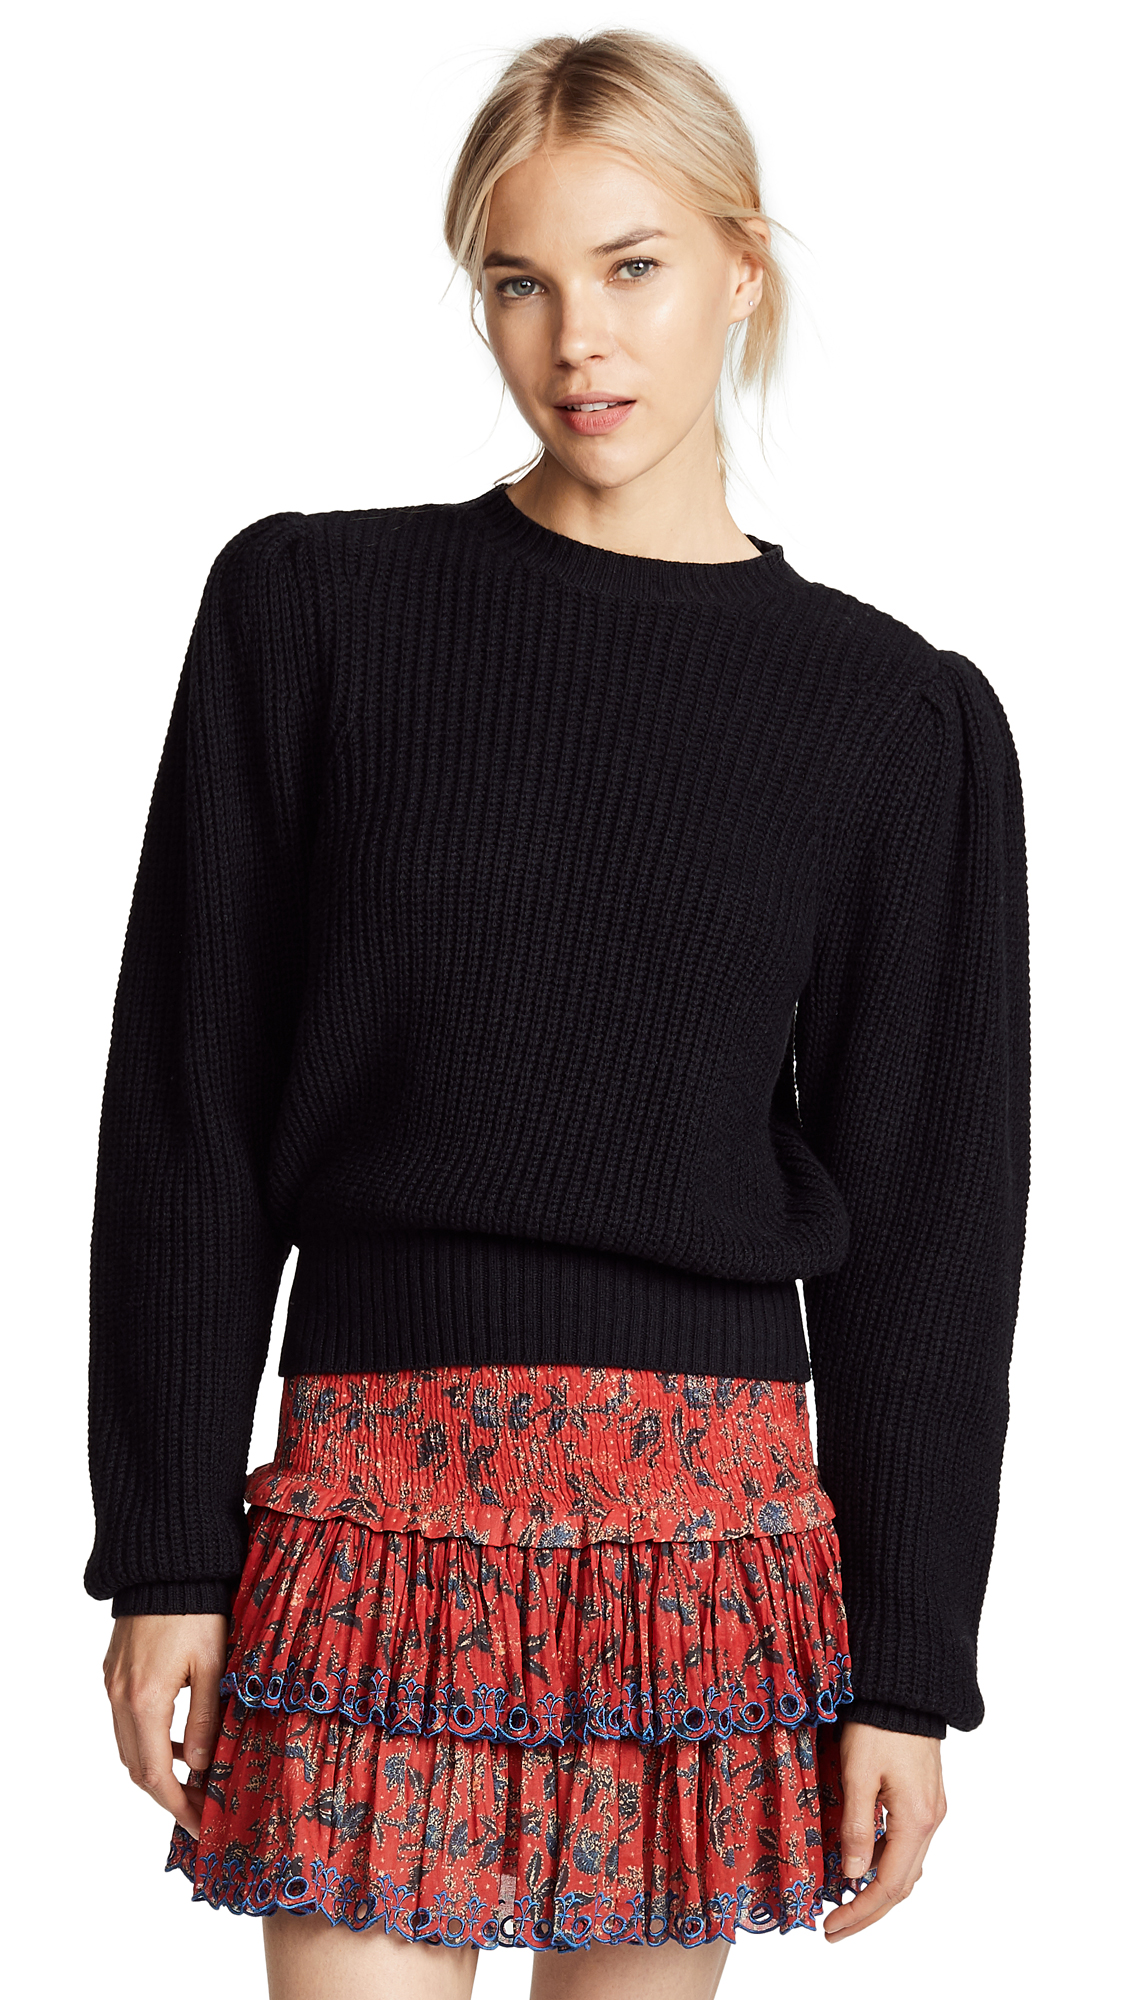 FRAME Cropped Crew Pullover - Black